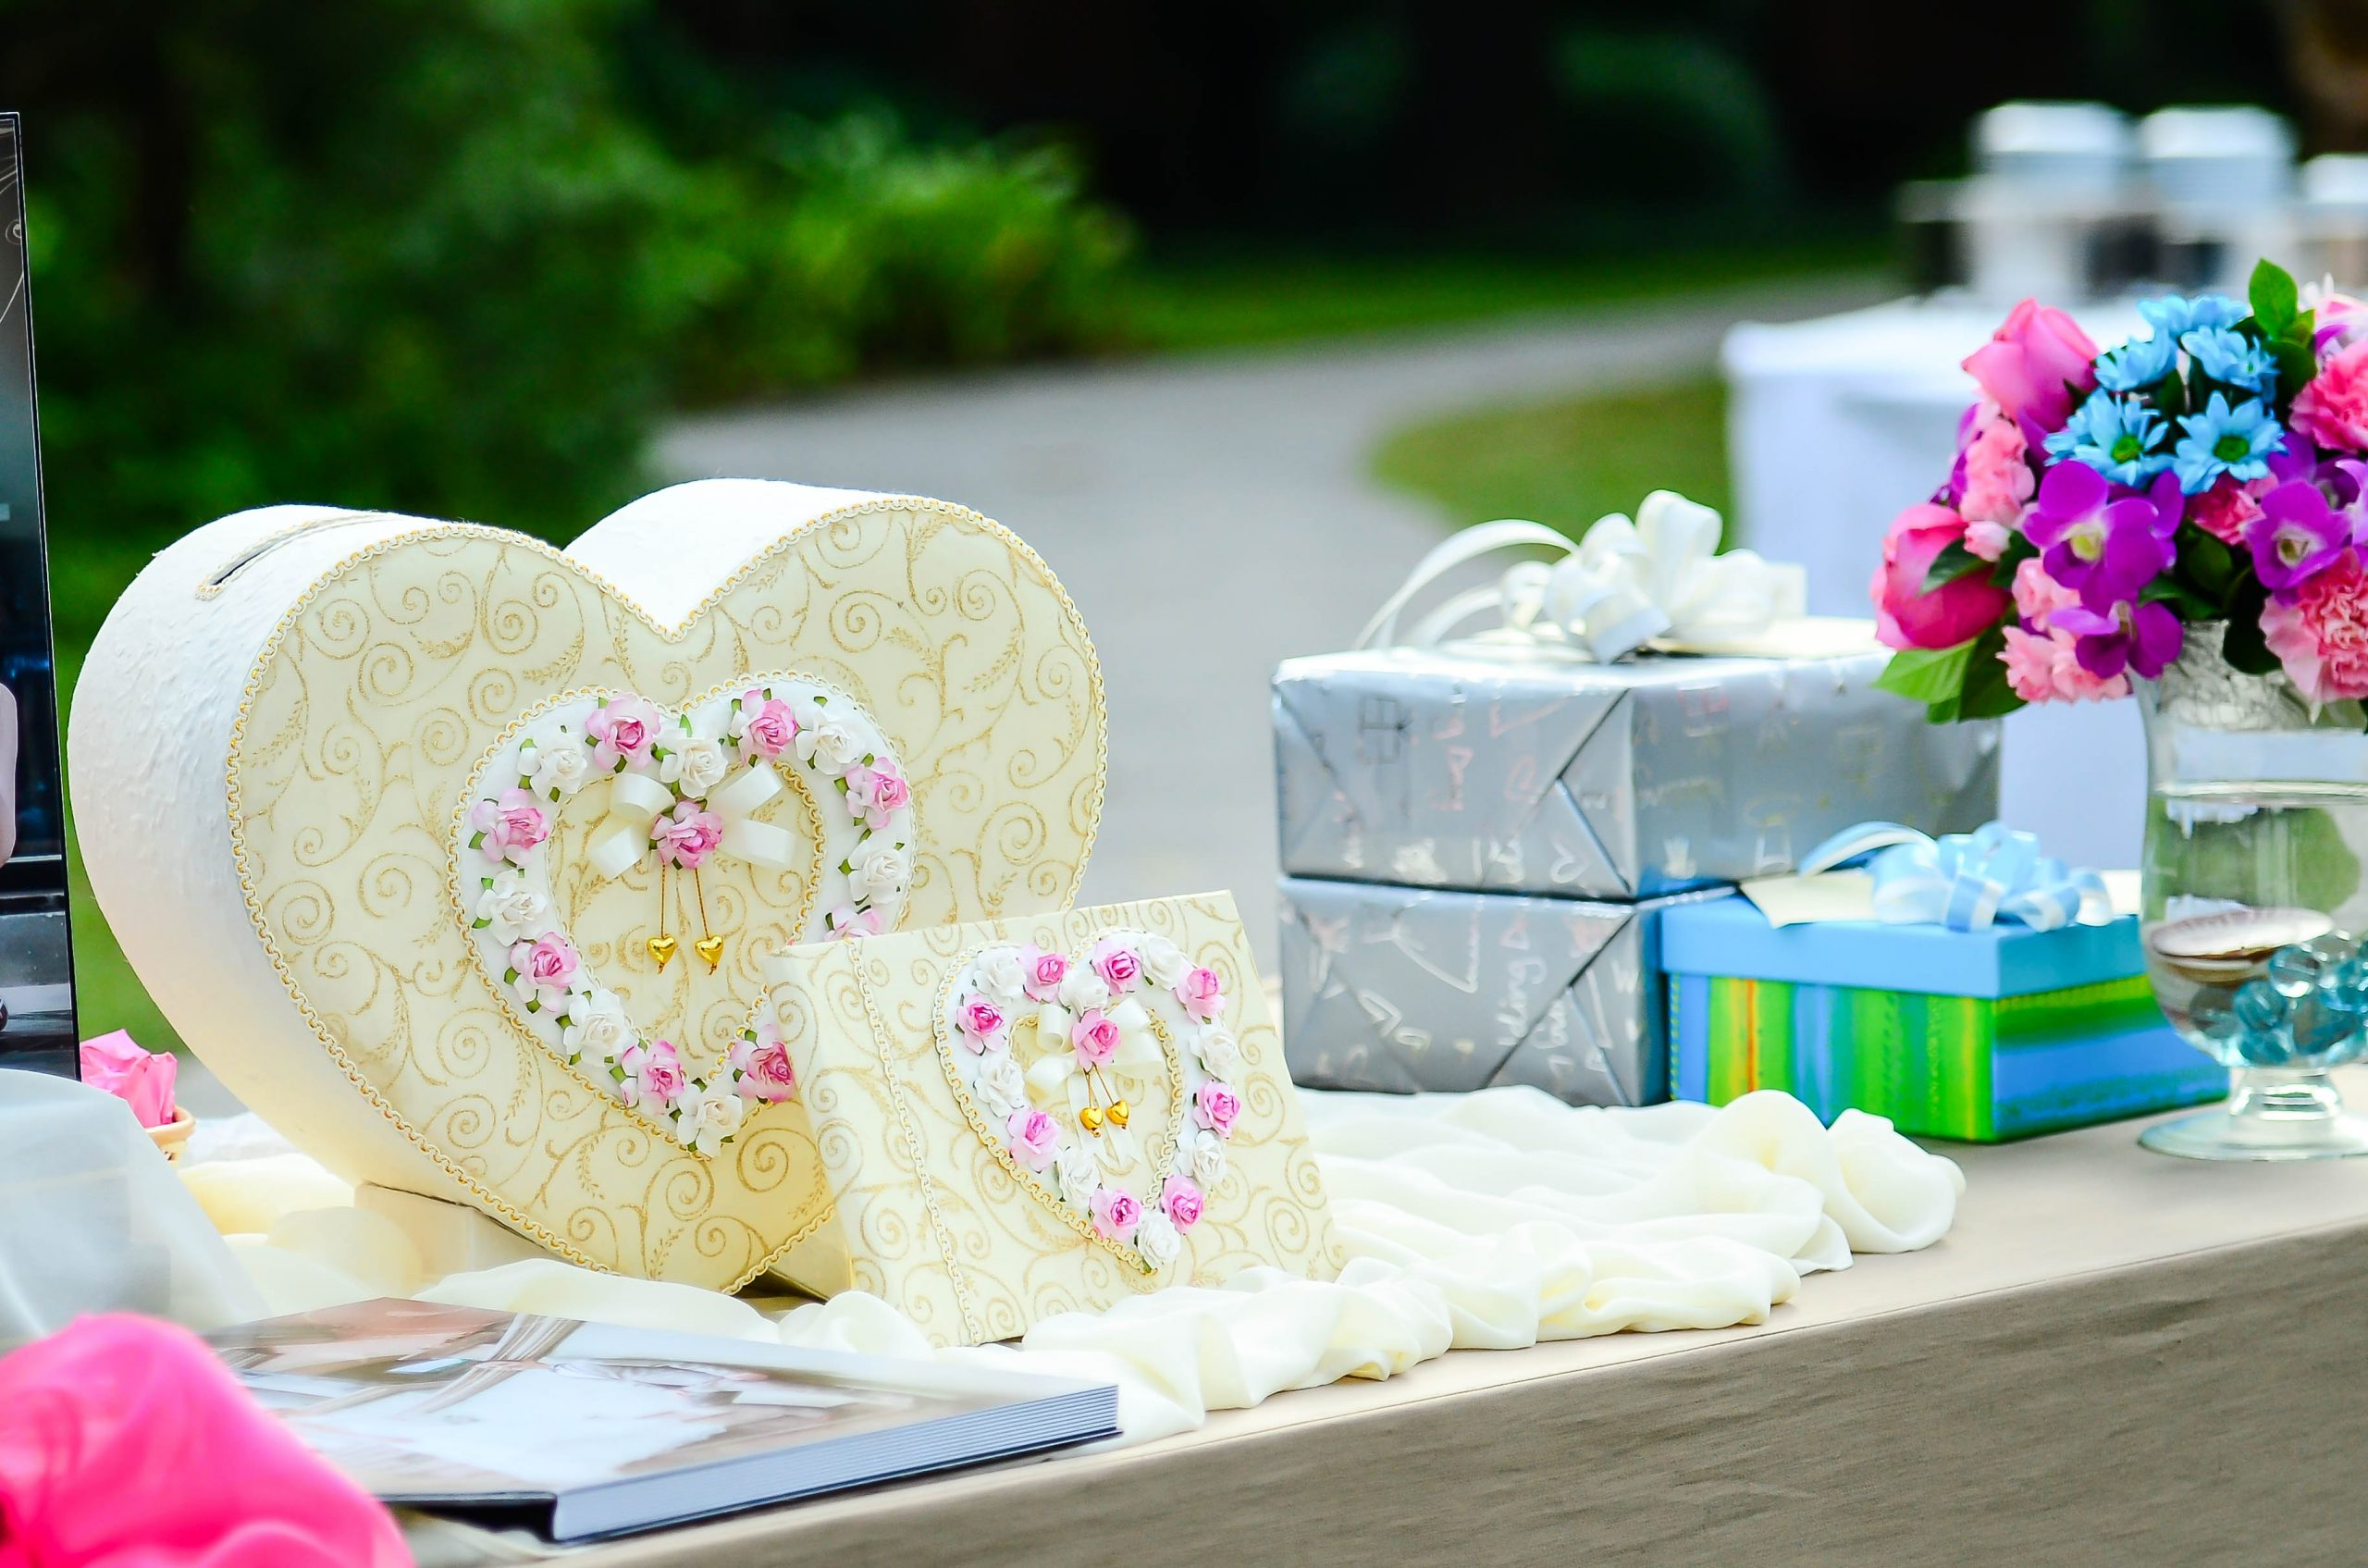 Seven Unusual Gifts to Consider this Wedding Season